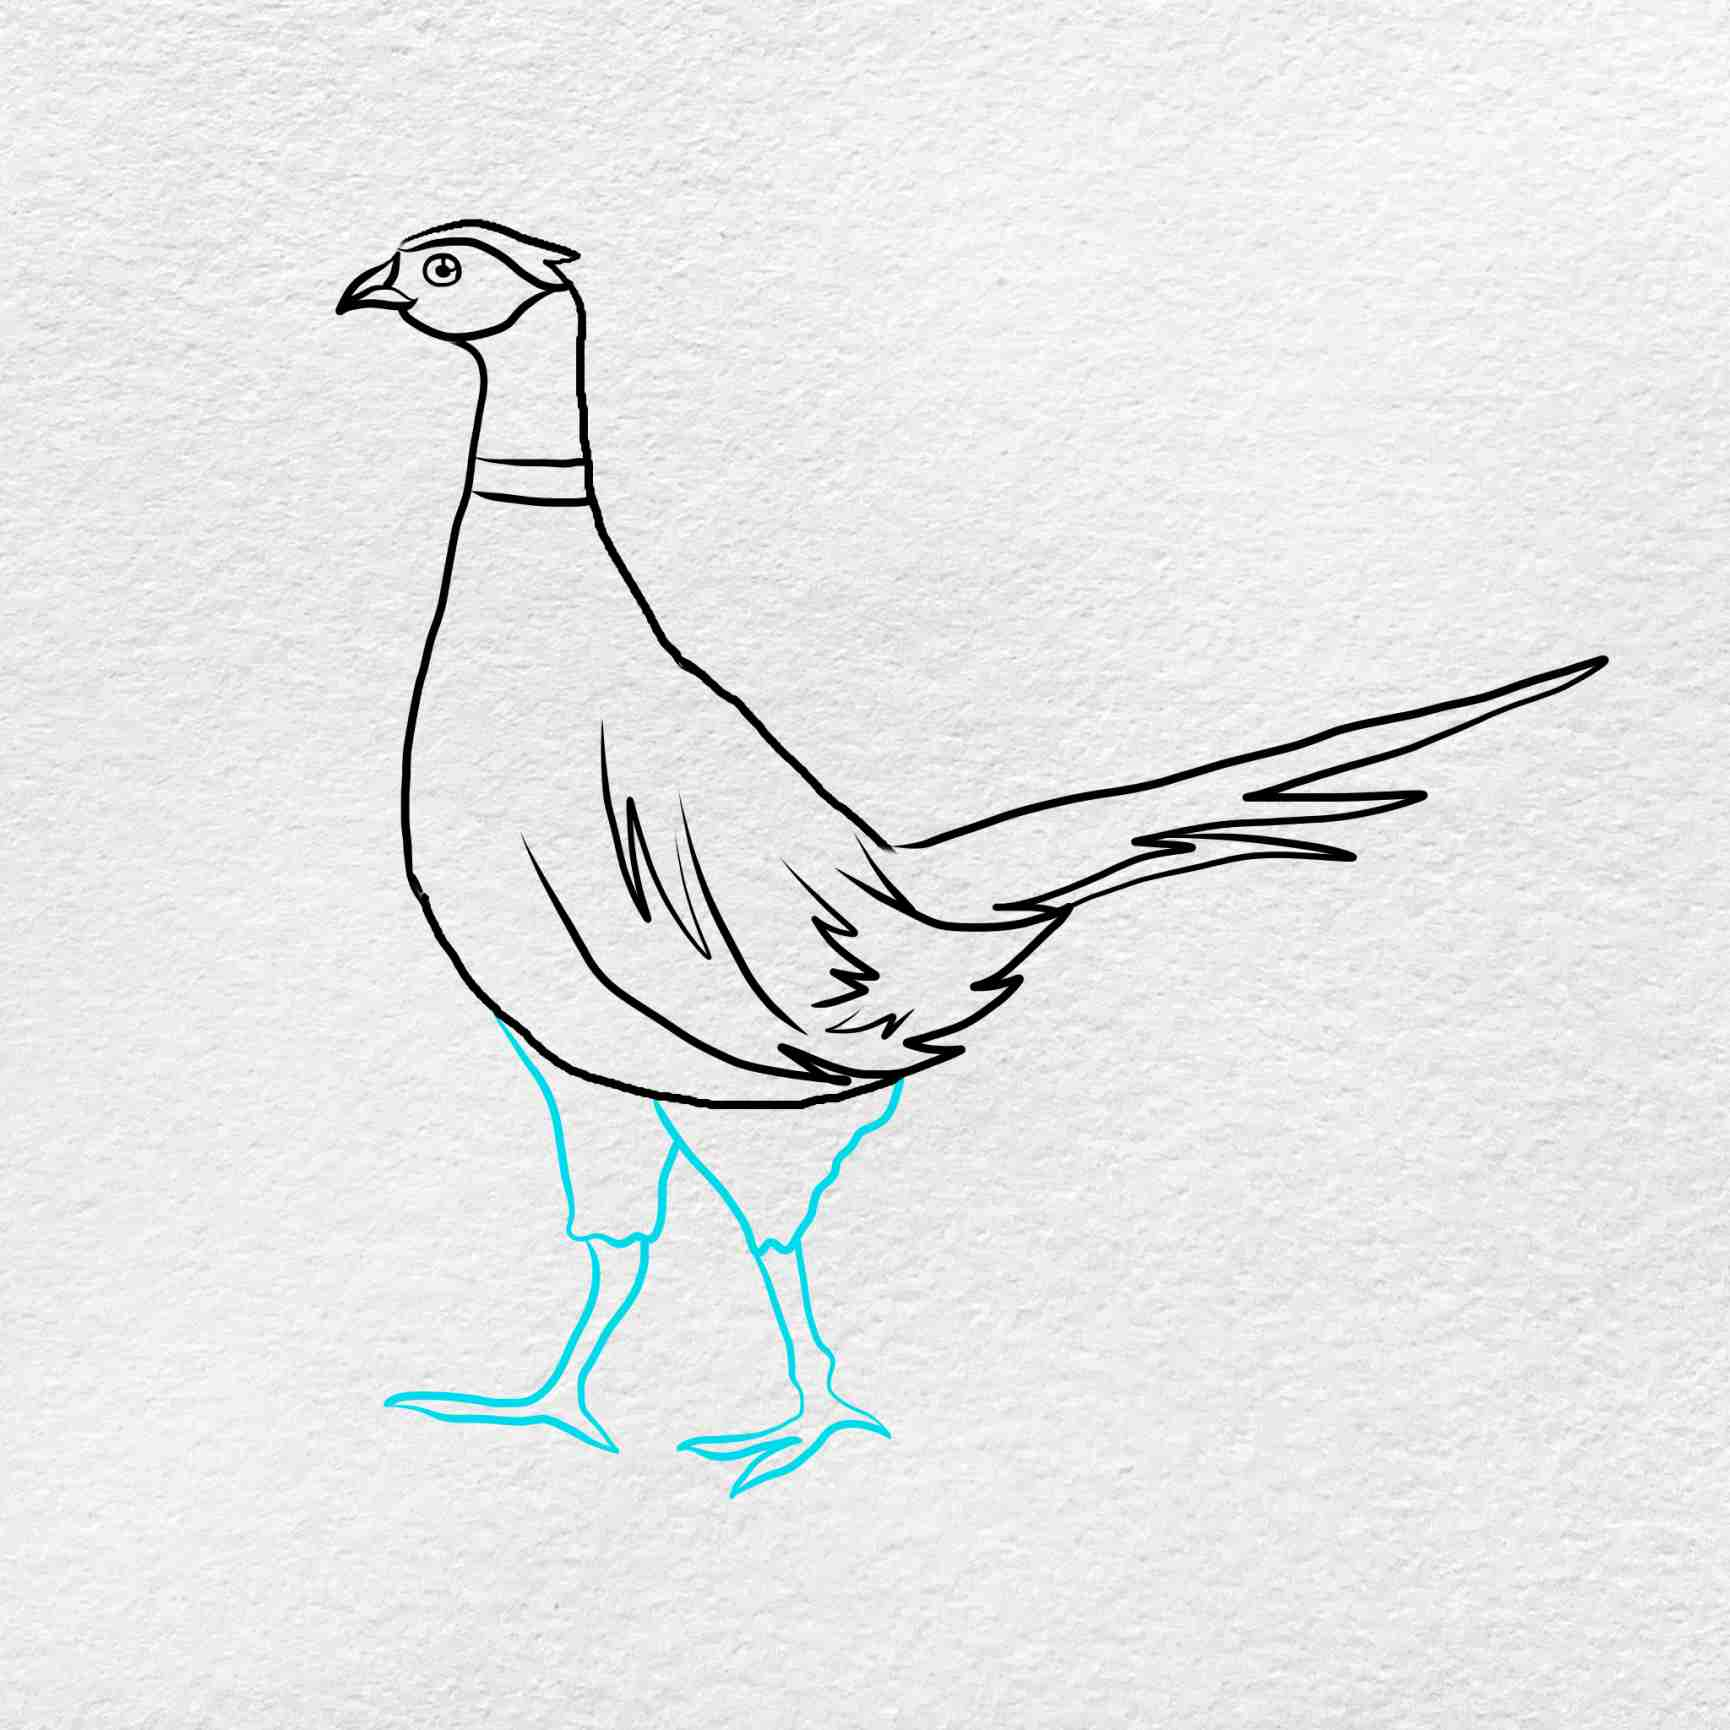 How To Draw Pheasant: Step 5